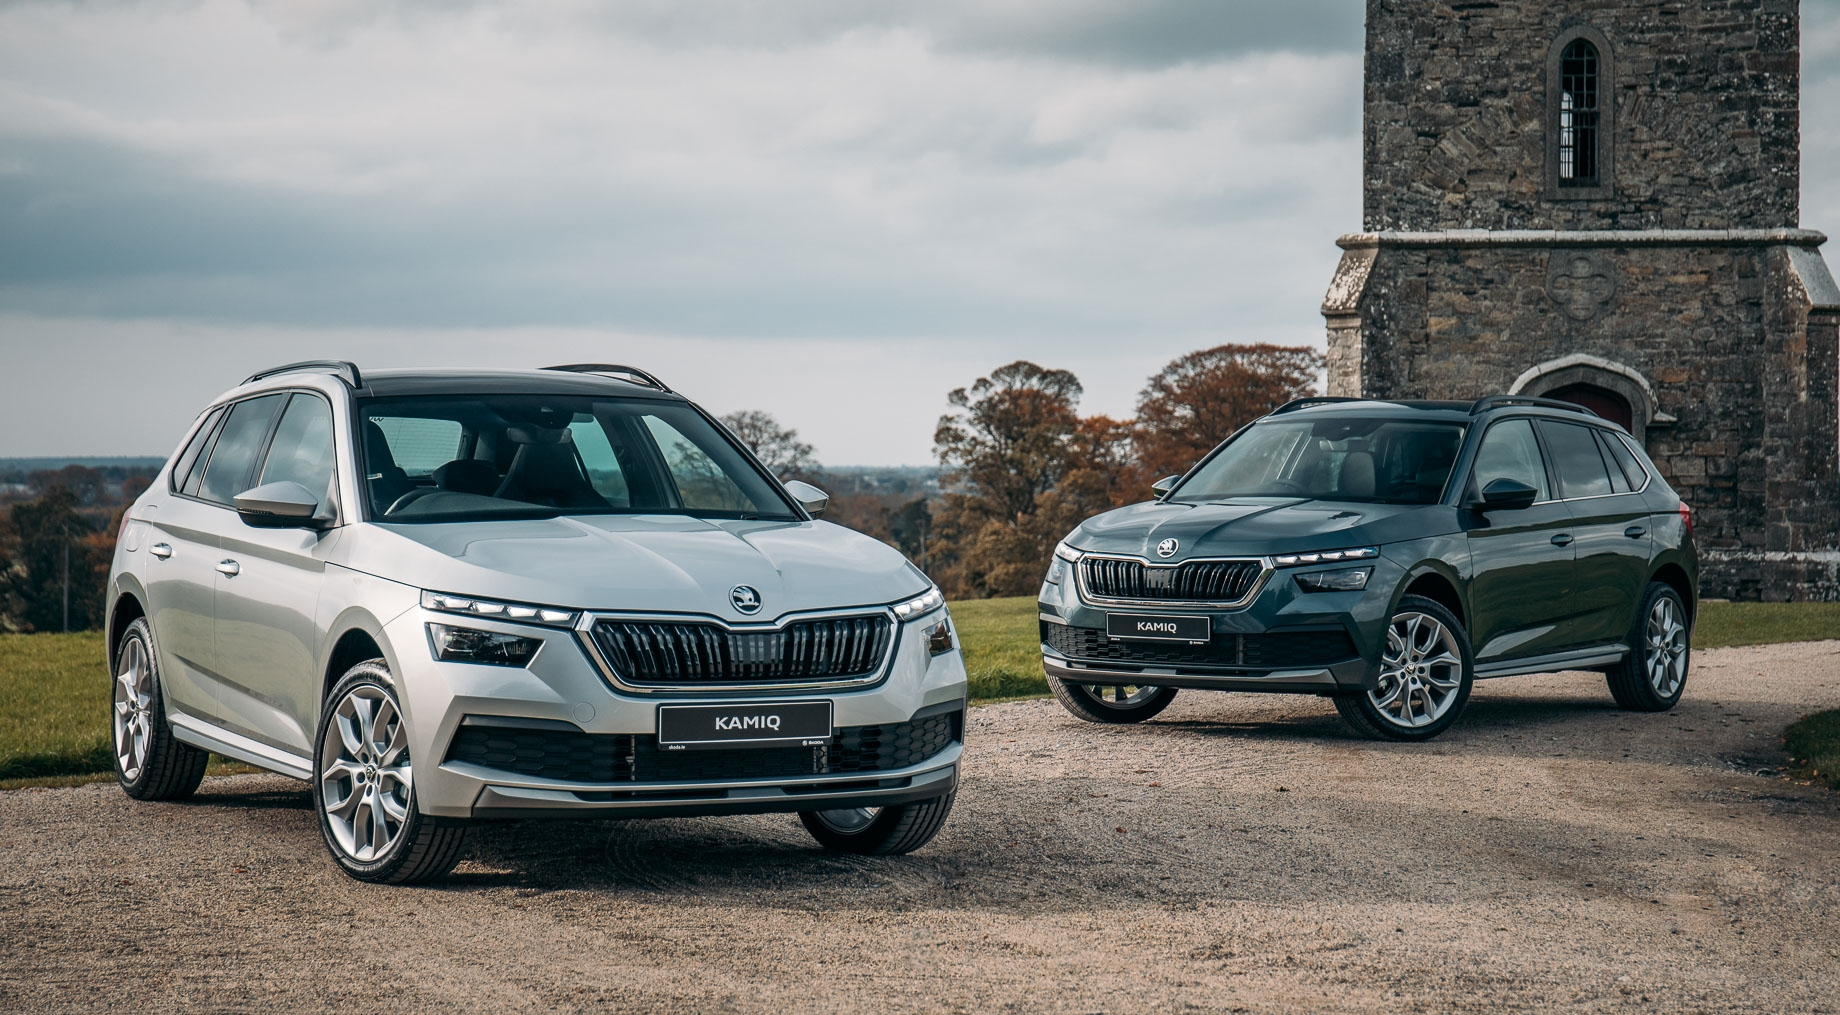 Skoda Kamiq launches in Ireland from €21,300